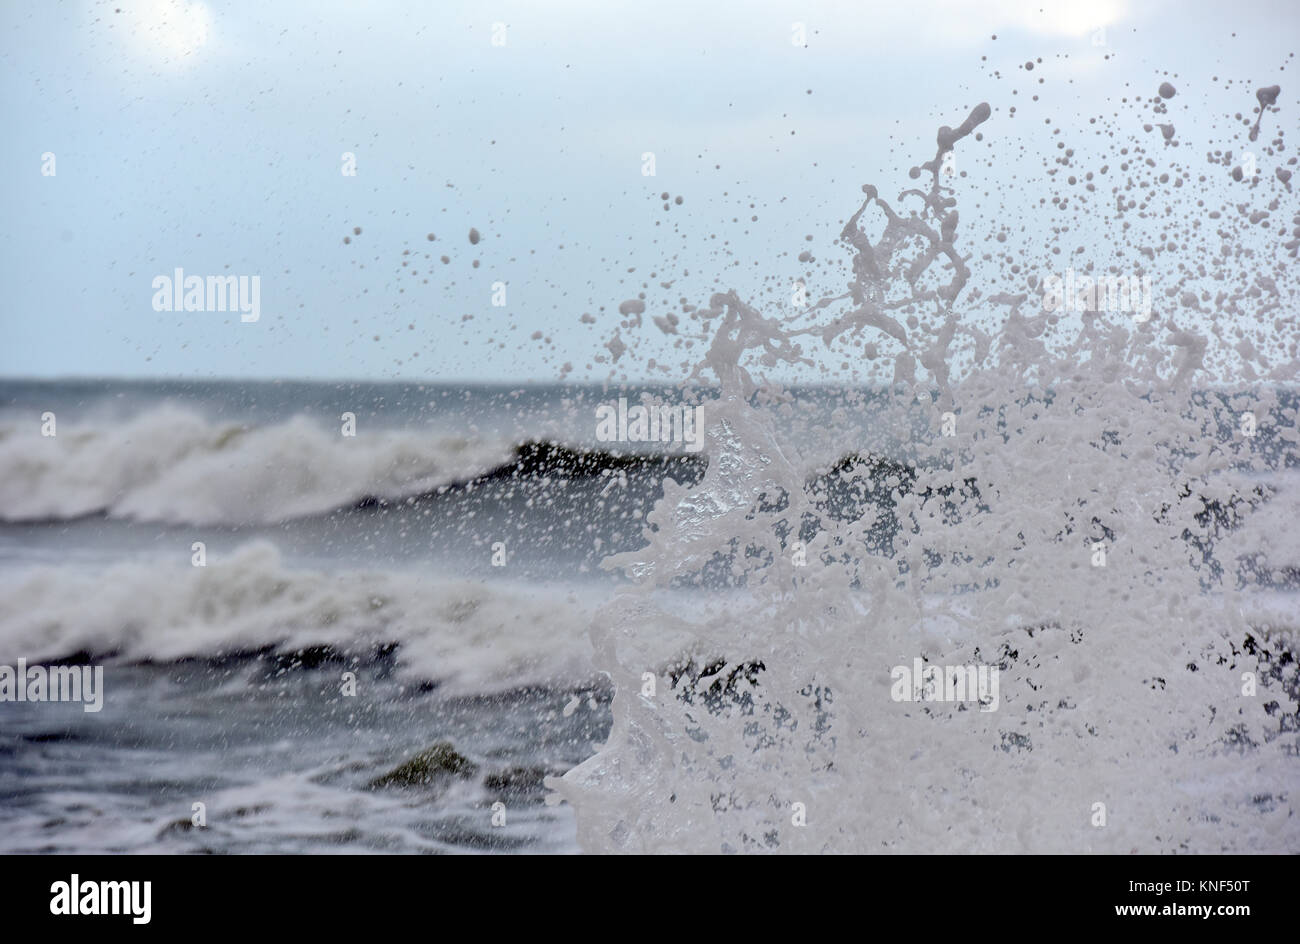 stormy seas and foaming waves smashing onto a sea wall and filling the air with spume and spray. Stormy winter weather - Stock Image